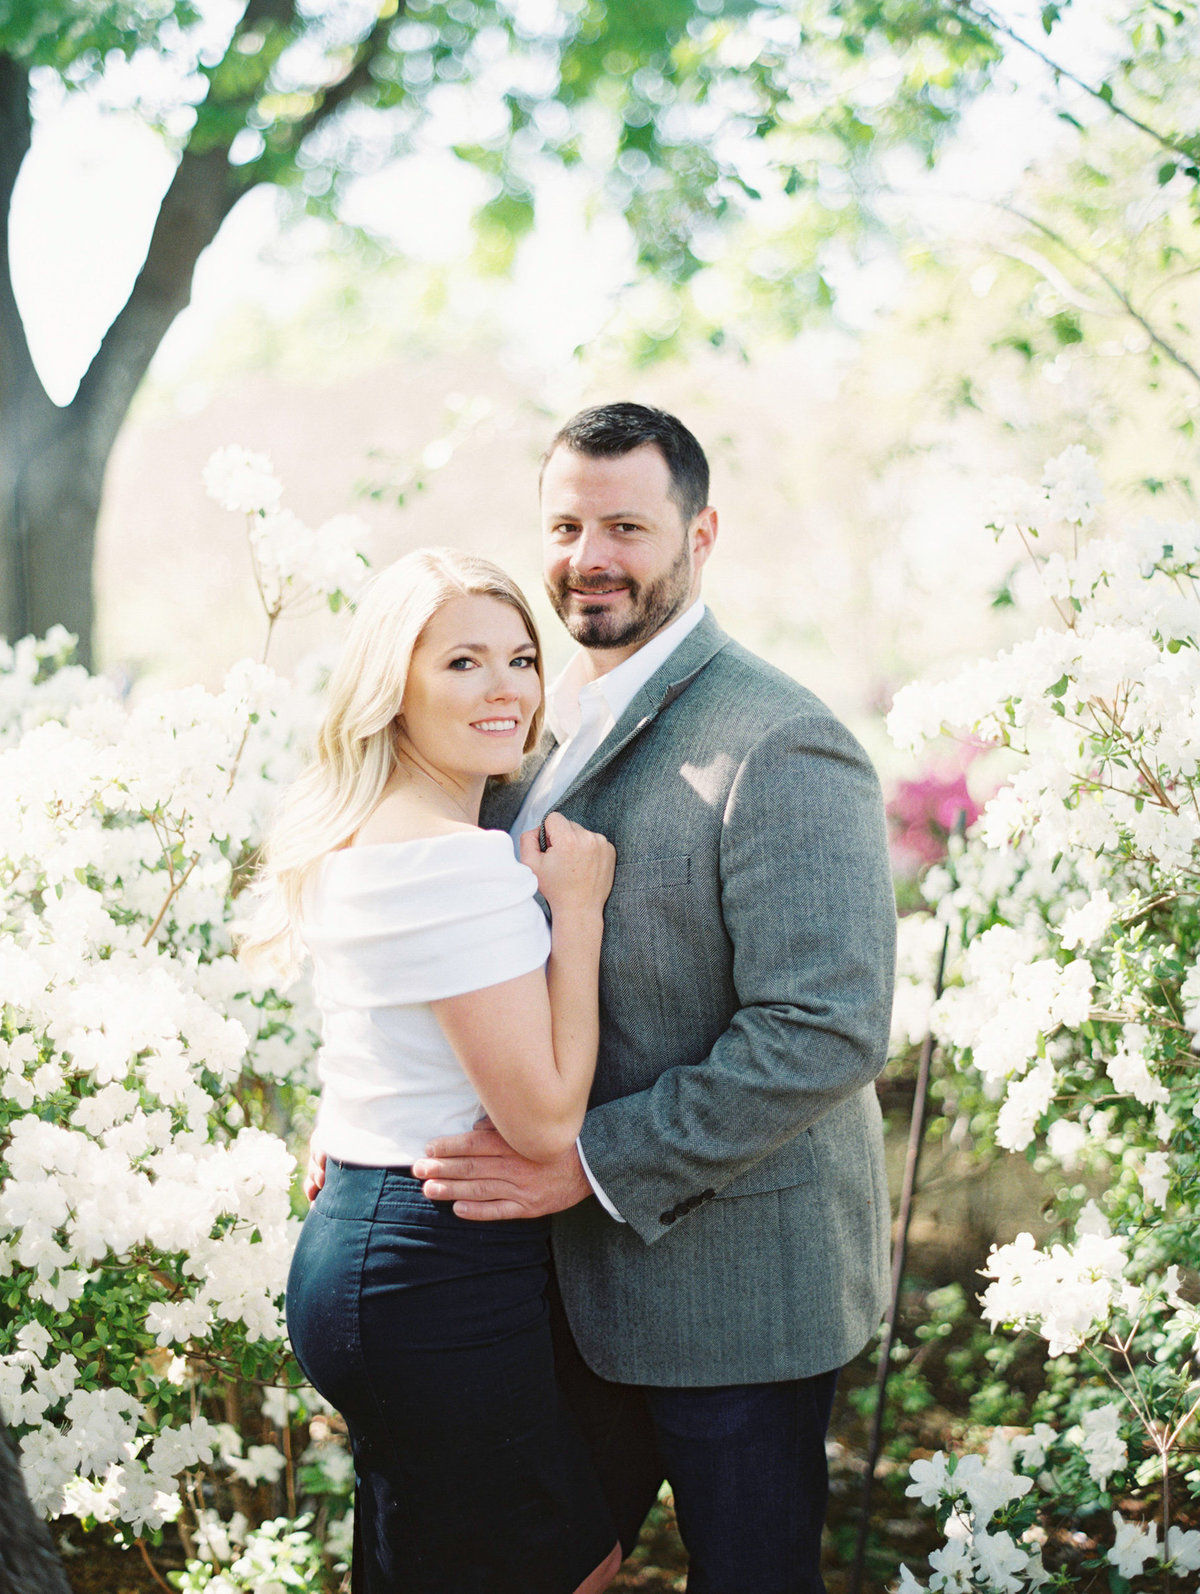 Courtney Hanson Photography - Dallas Spring Engagement Photos-008-2